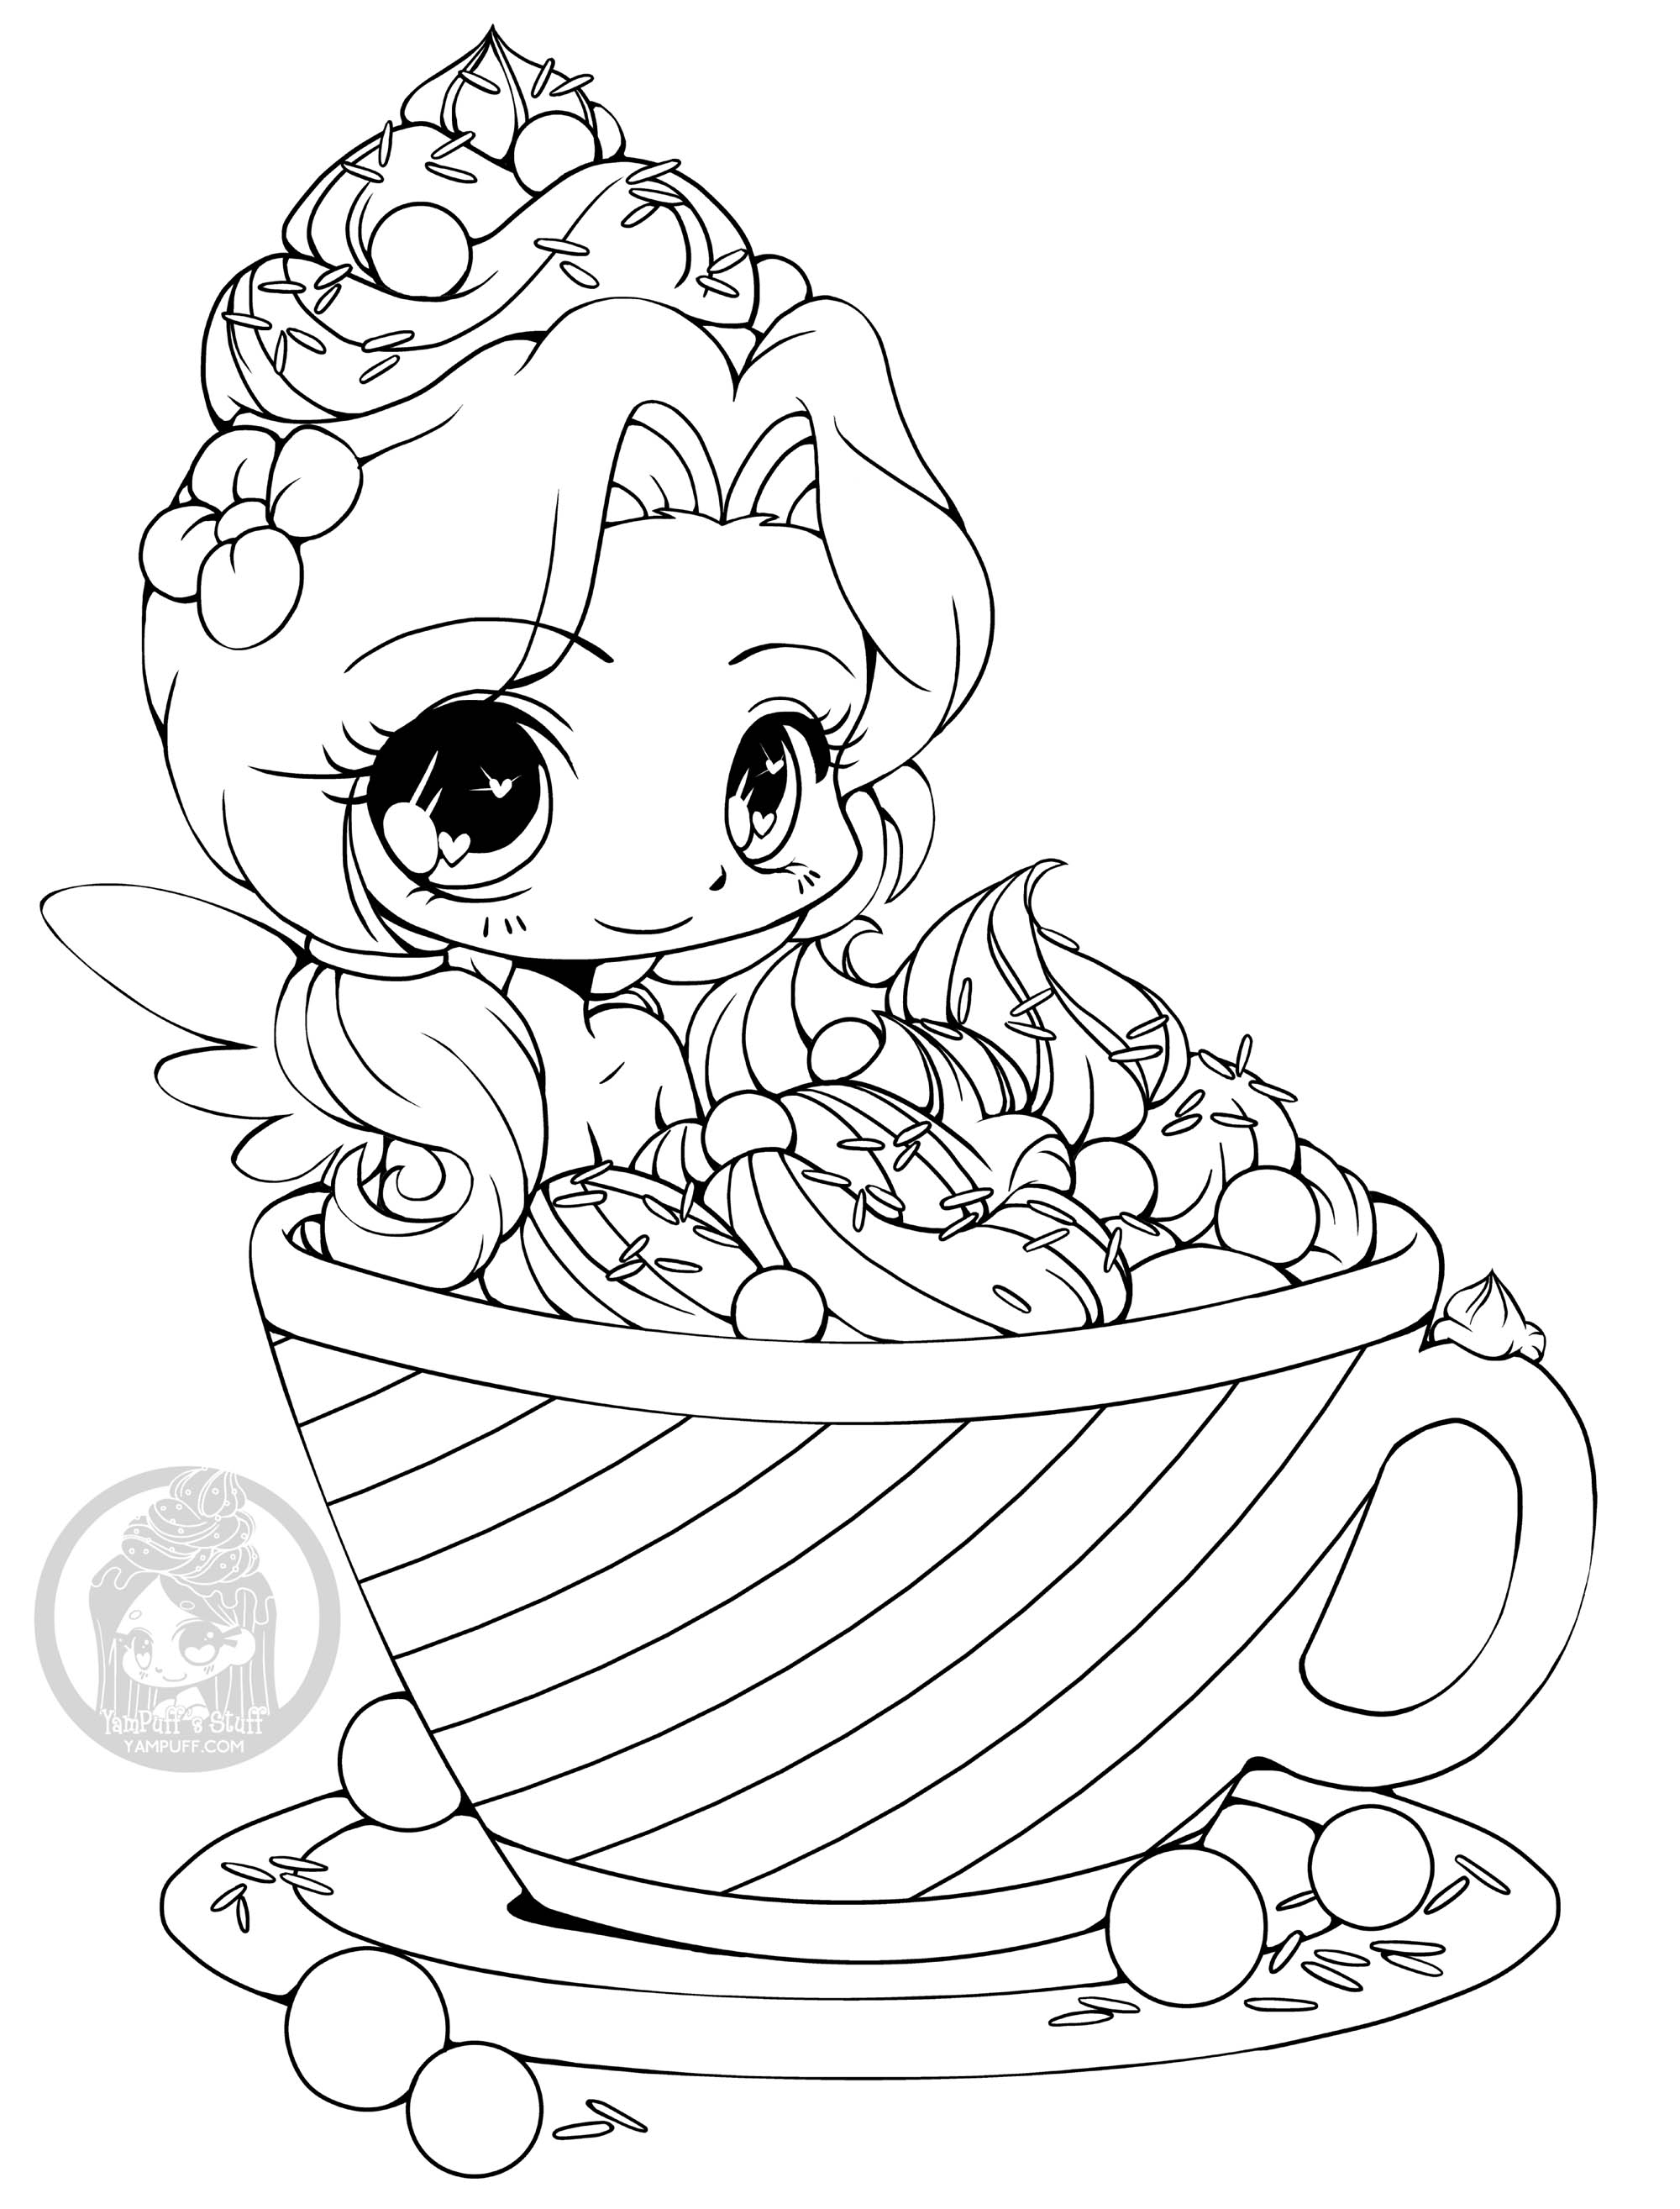 Kawaii To Color For Children Kawaii Kids Coloring Pages